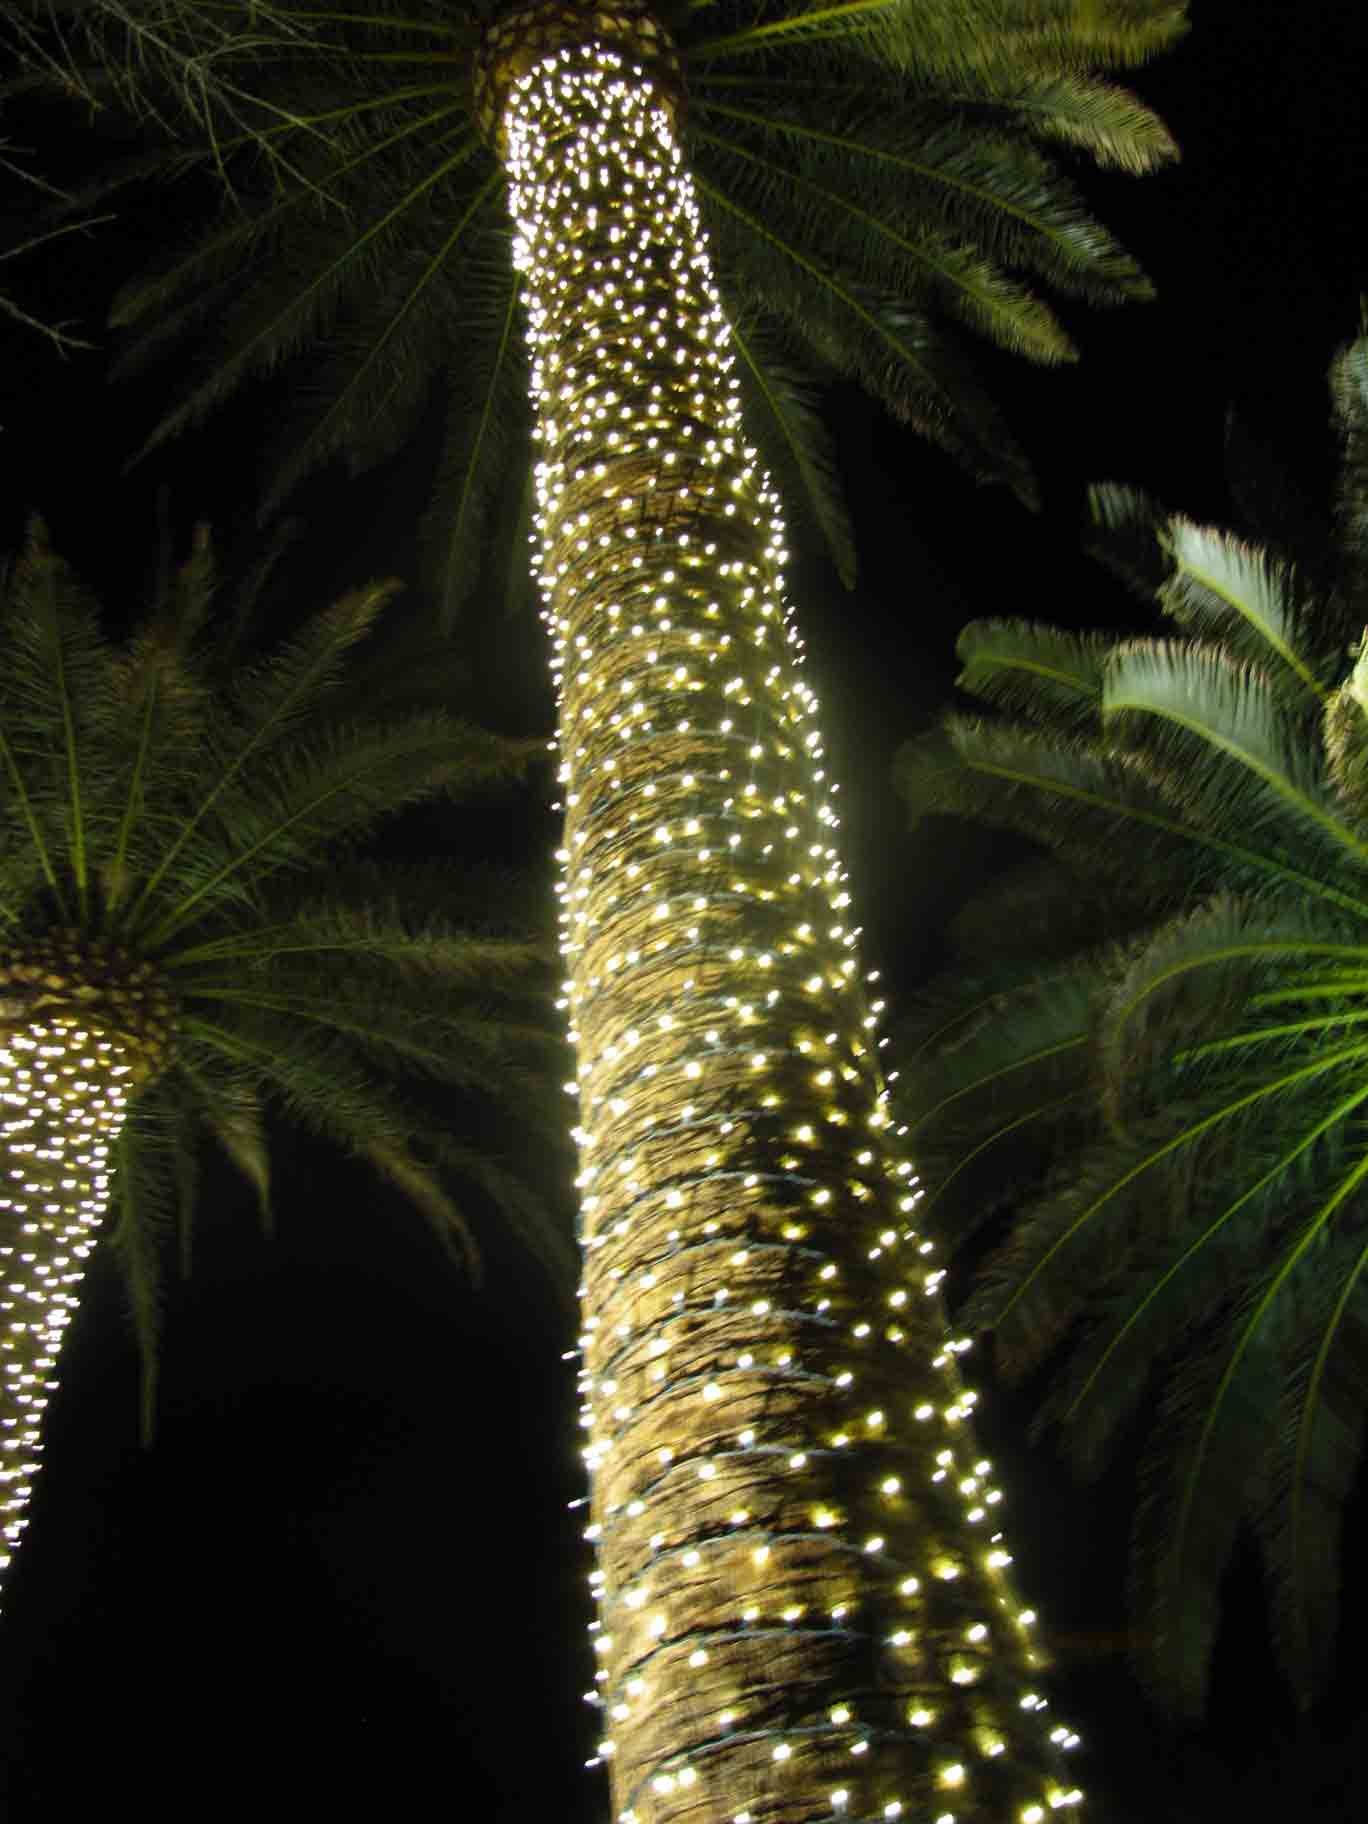 LED lights installed on palm tree by Holiday Decorations in Las Vegas